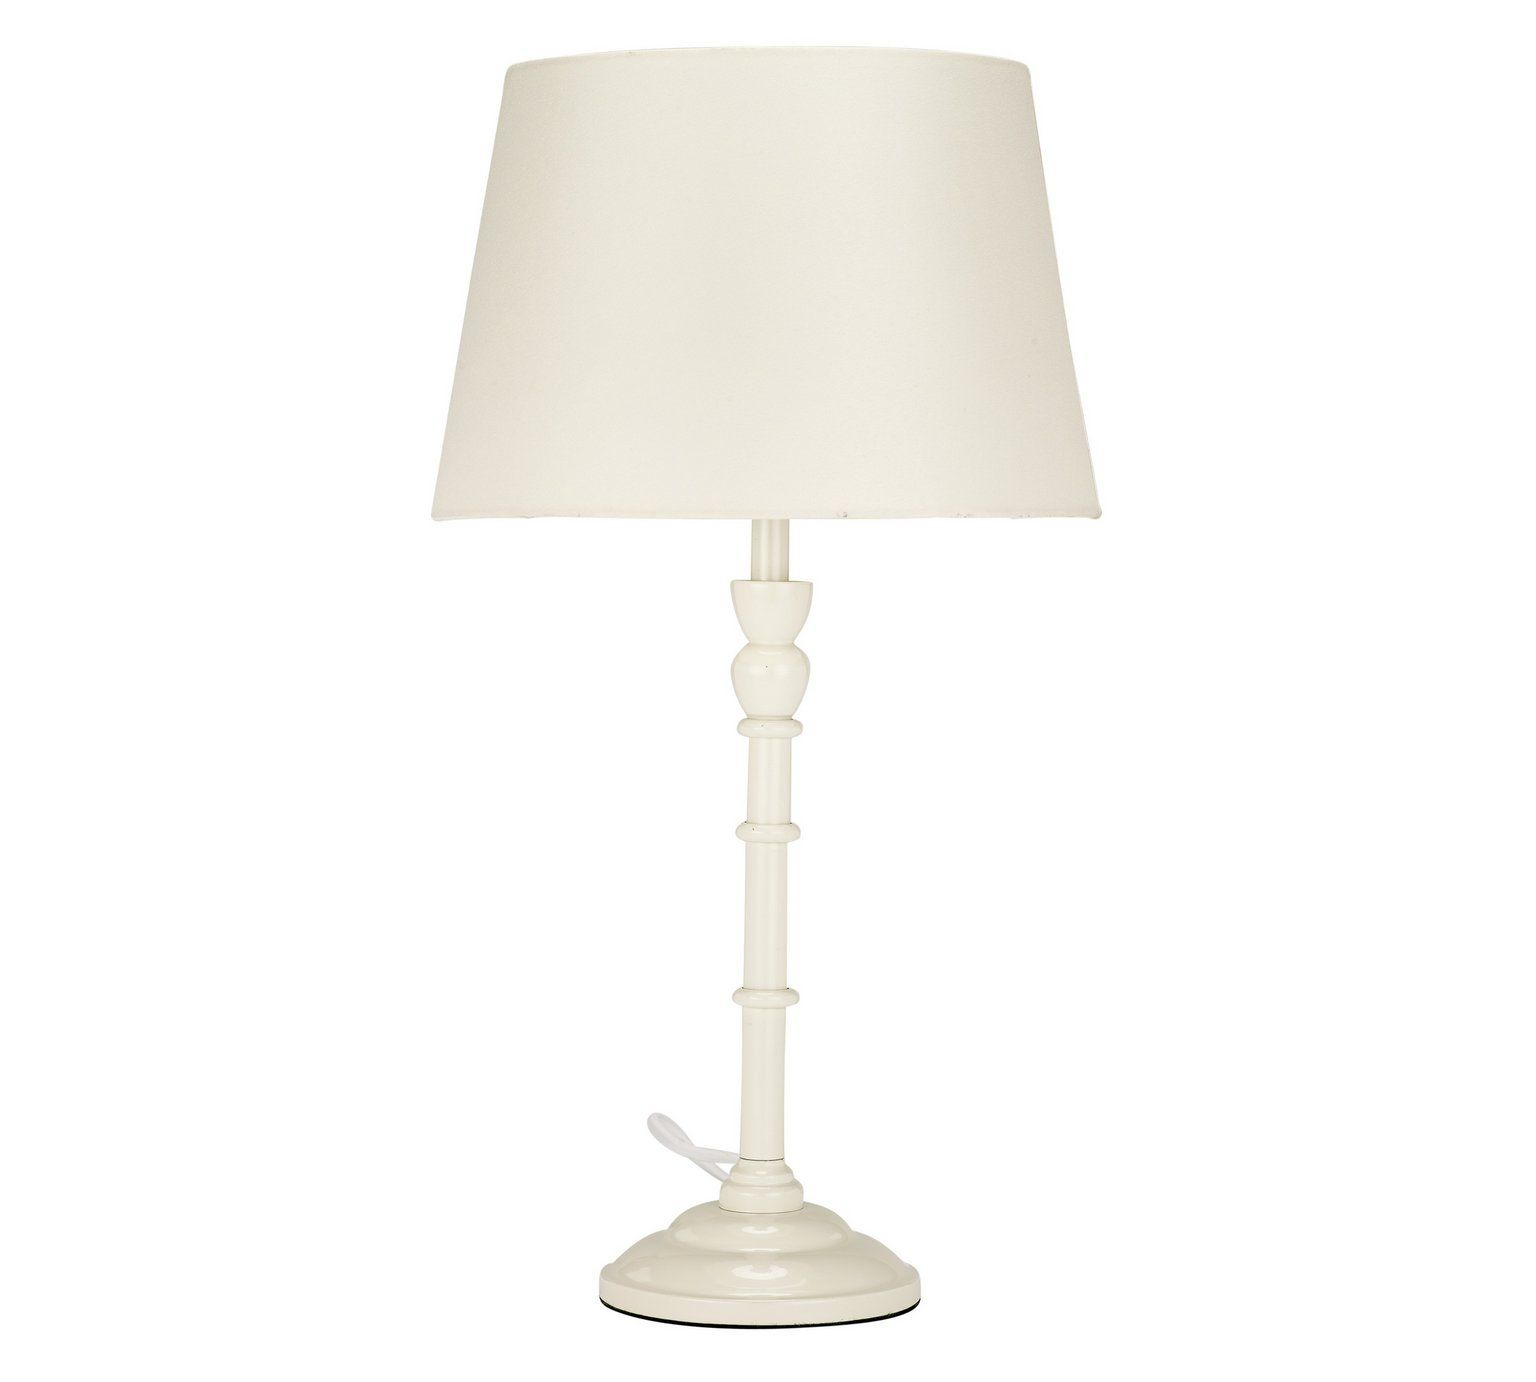 Buy HOME Thetford Stick Table Lamp - Putty at Argos.co.uk - Your ...